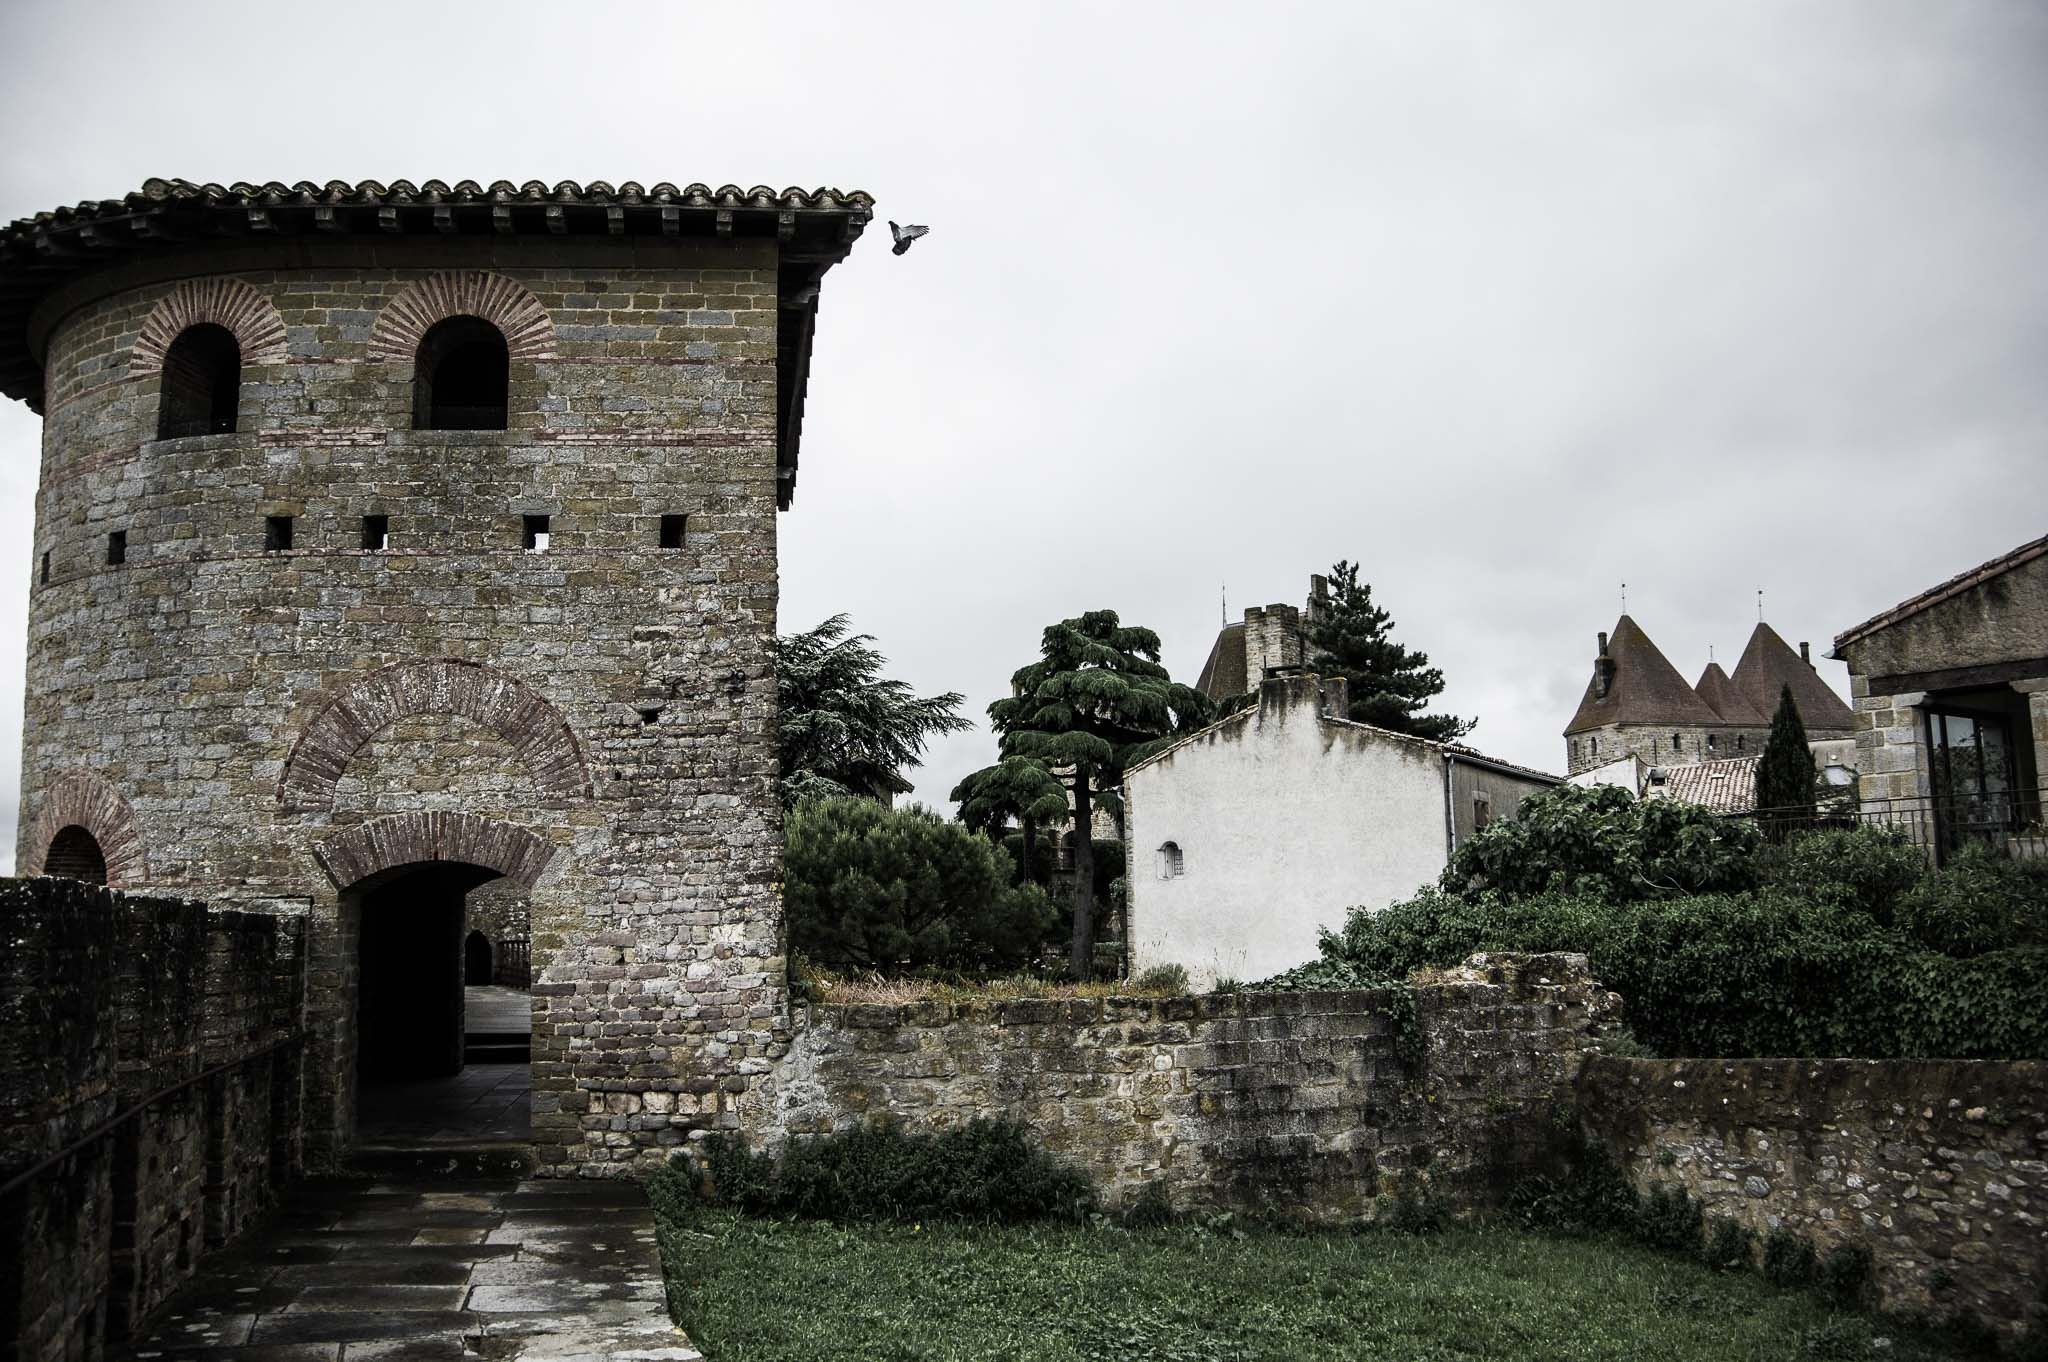 Roman tower in the city walls of Carcassonne